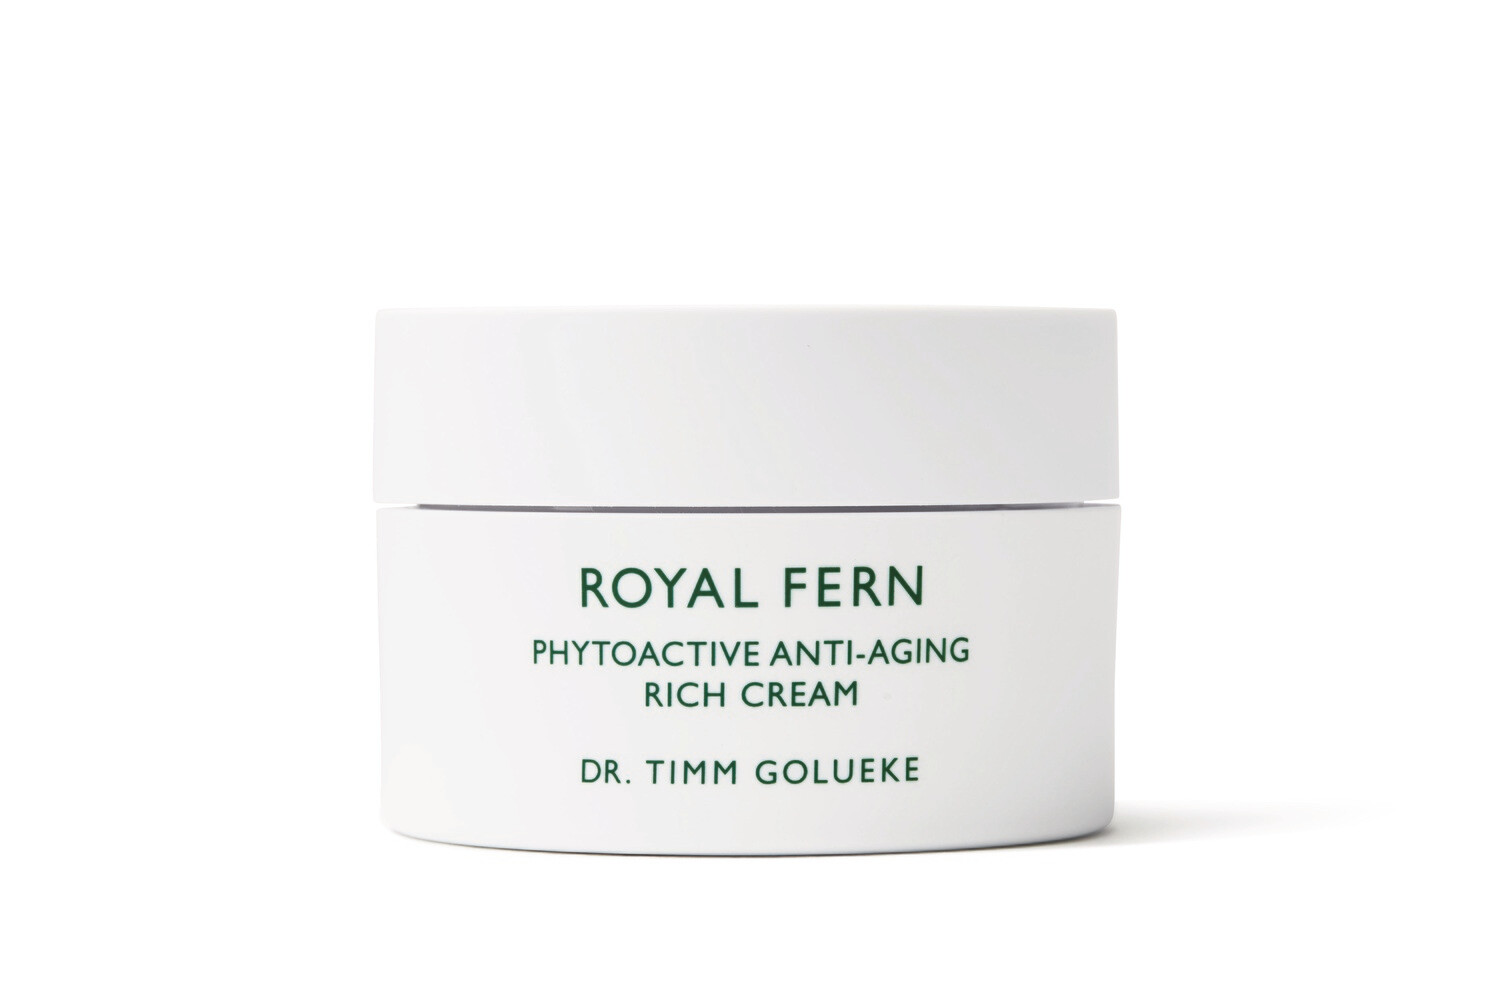 ROYAL FERN - PHYTOACTIVE ANTI-AGING RICH CREAM